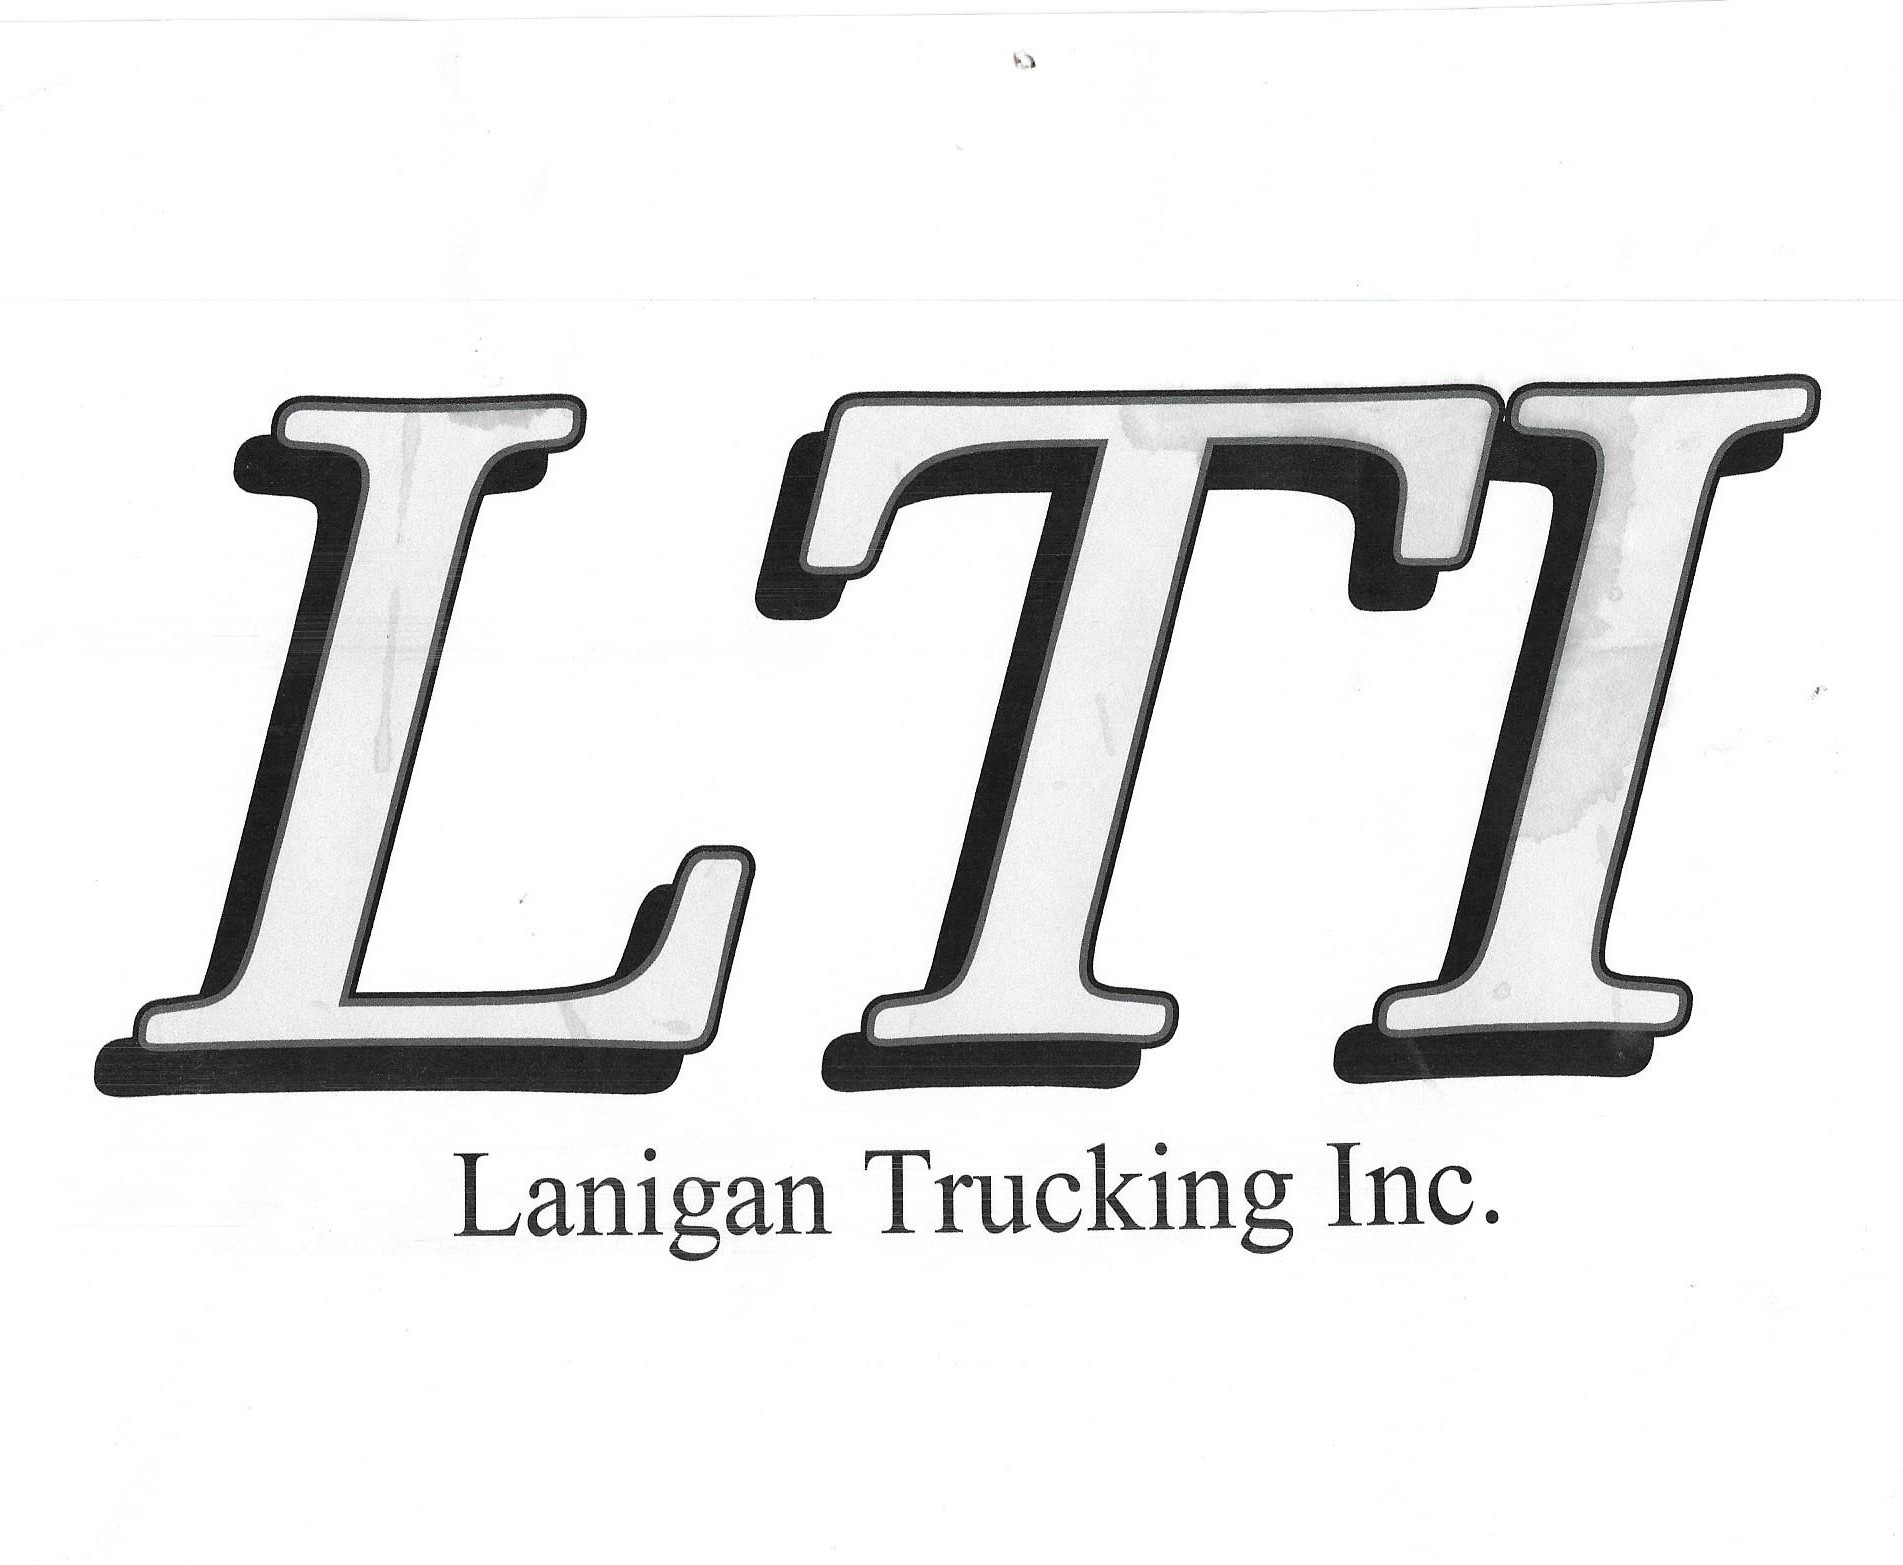 Lanigan Trucking